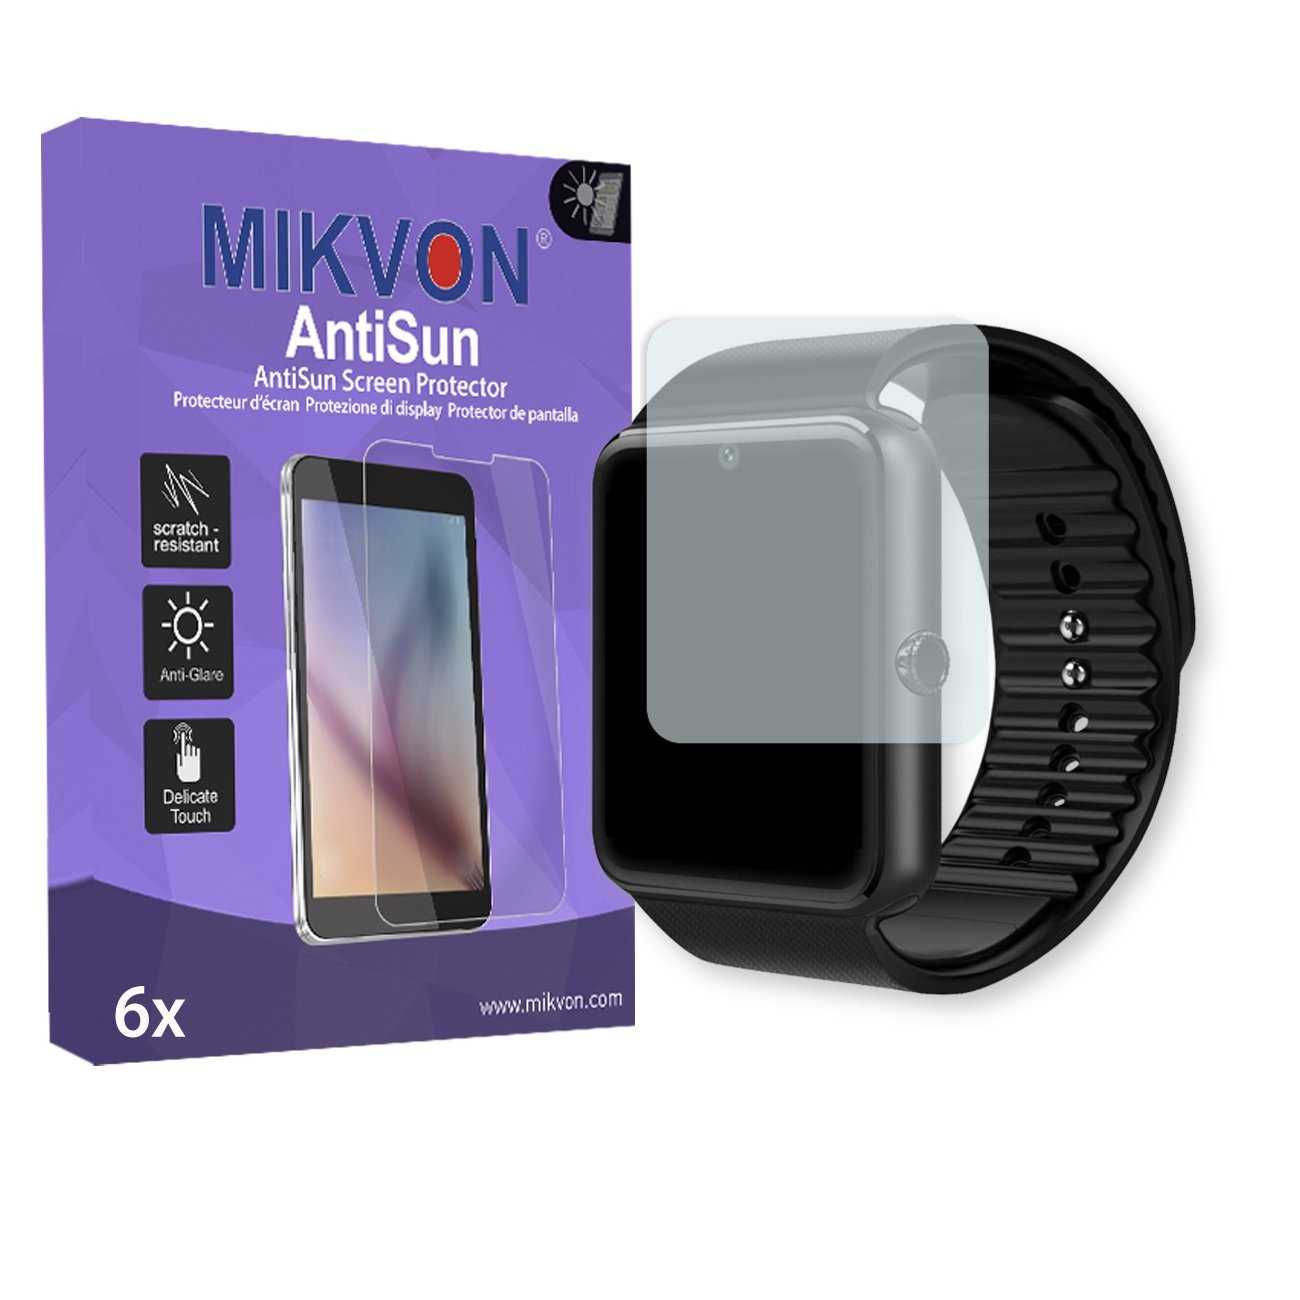 """6x Mikvon AntiSun Screen Protector for LaTEC 1.54"""" Bluetooth Smart Watch - Retail Package with accessories (intentionally smaller than the display due to its curved surface)"""